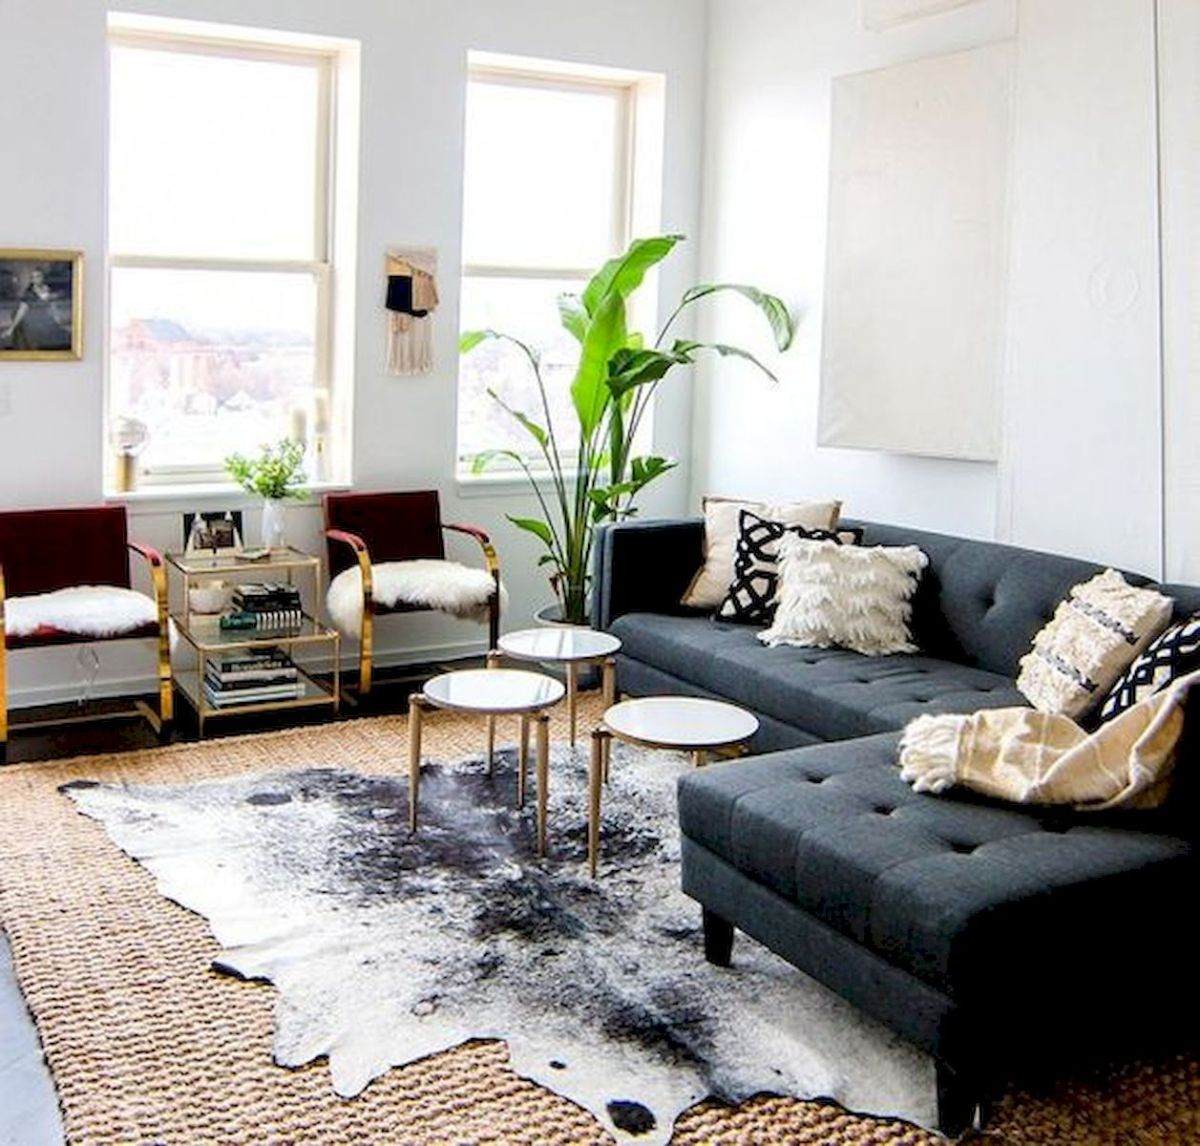 60 Living Room Decor Ideas With Artwork Coffee Tables (15)